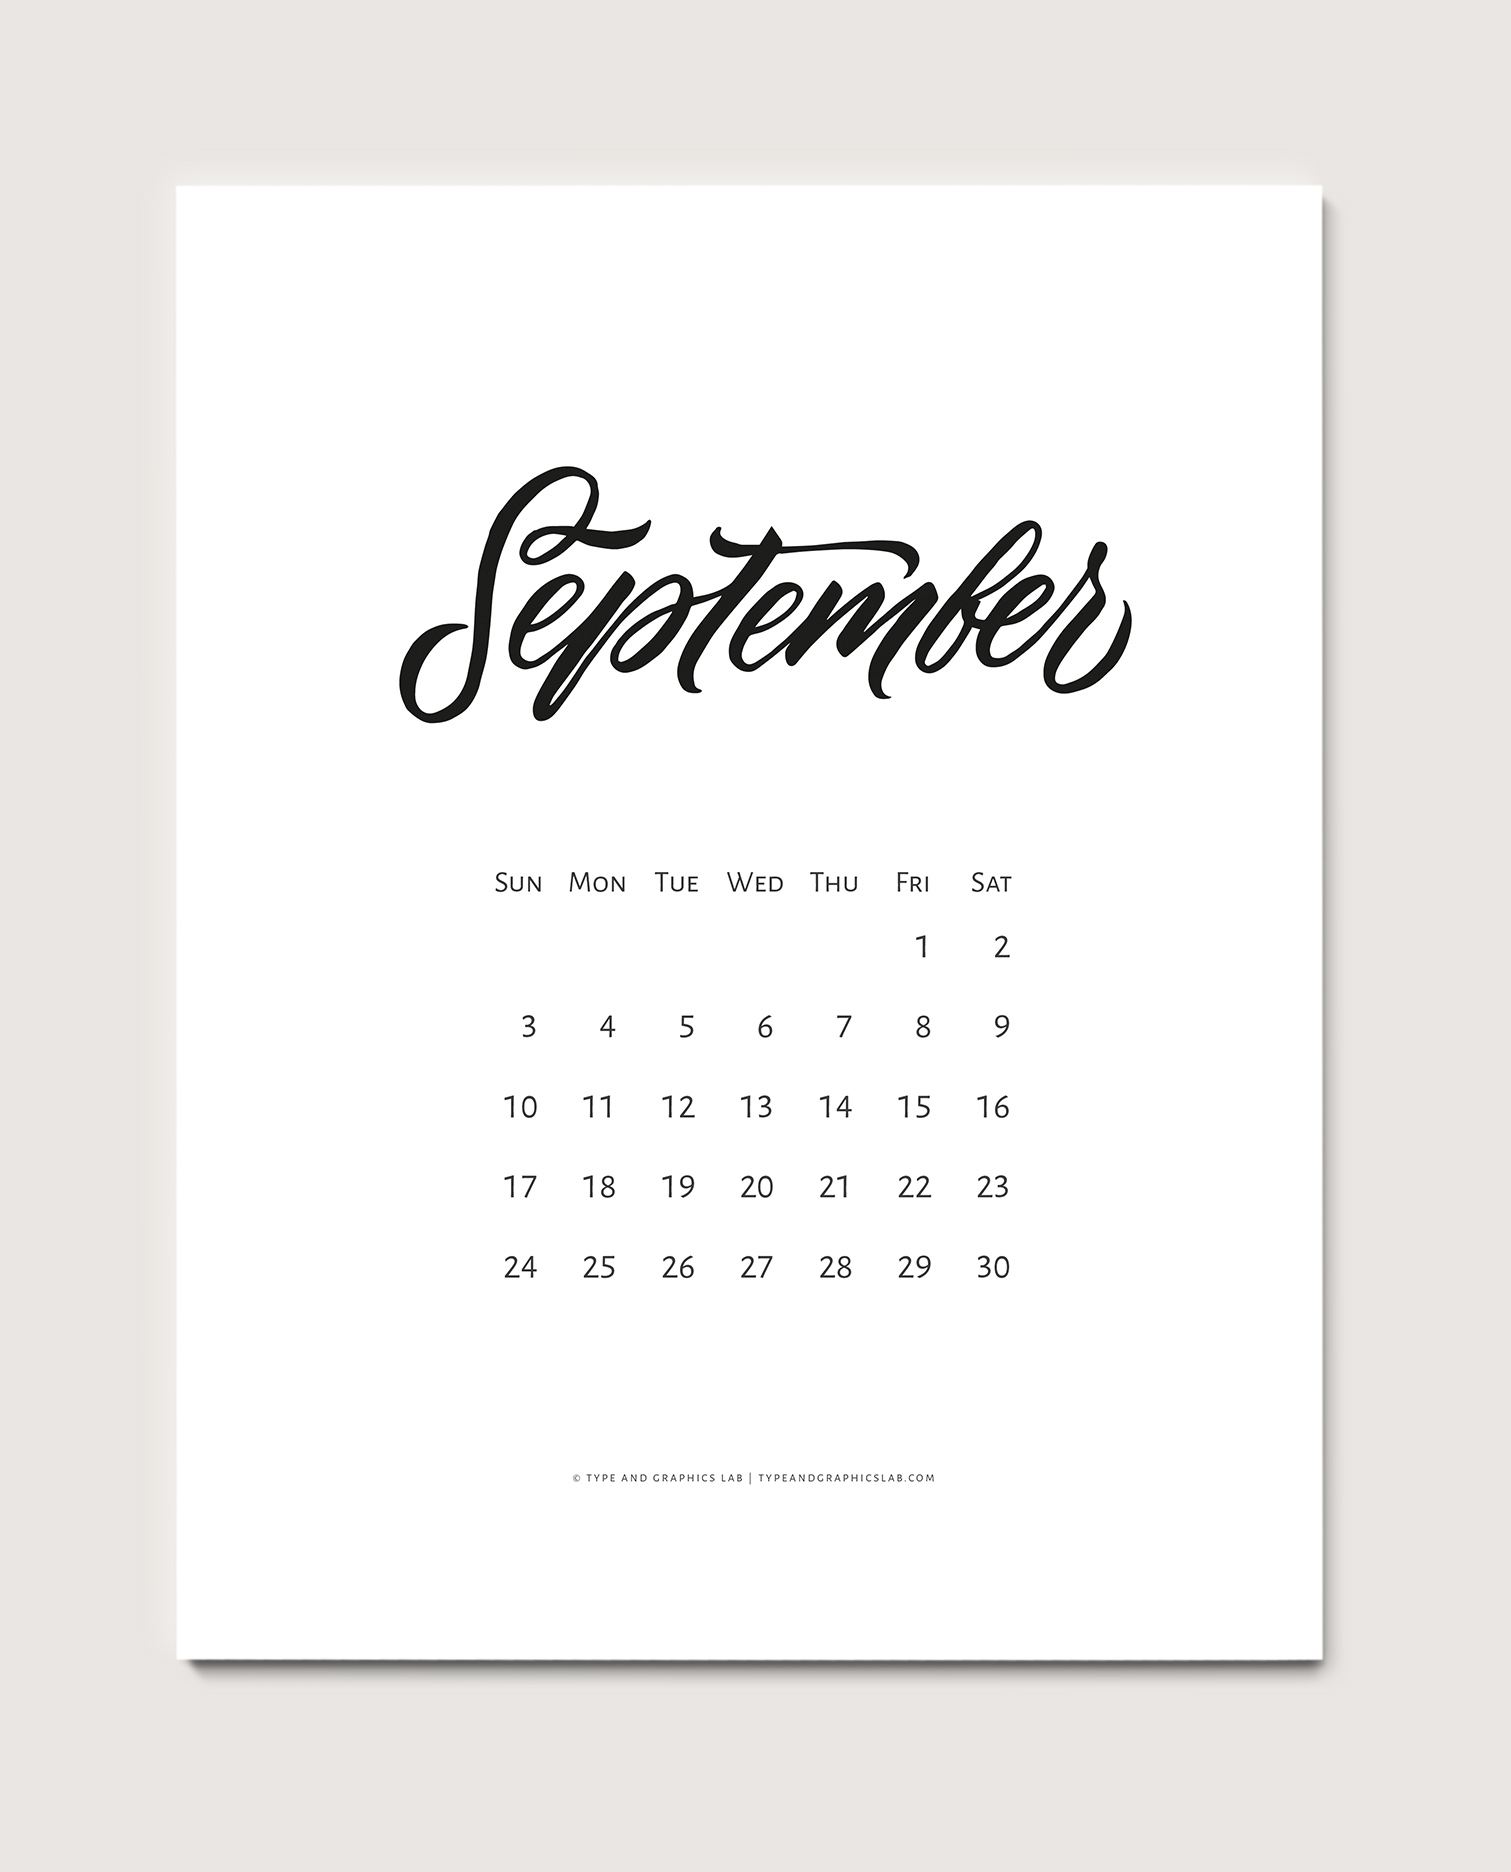 Download a free printable calendar for September 2017 |©typeandgraphicslab.com | For personal use only